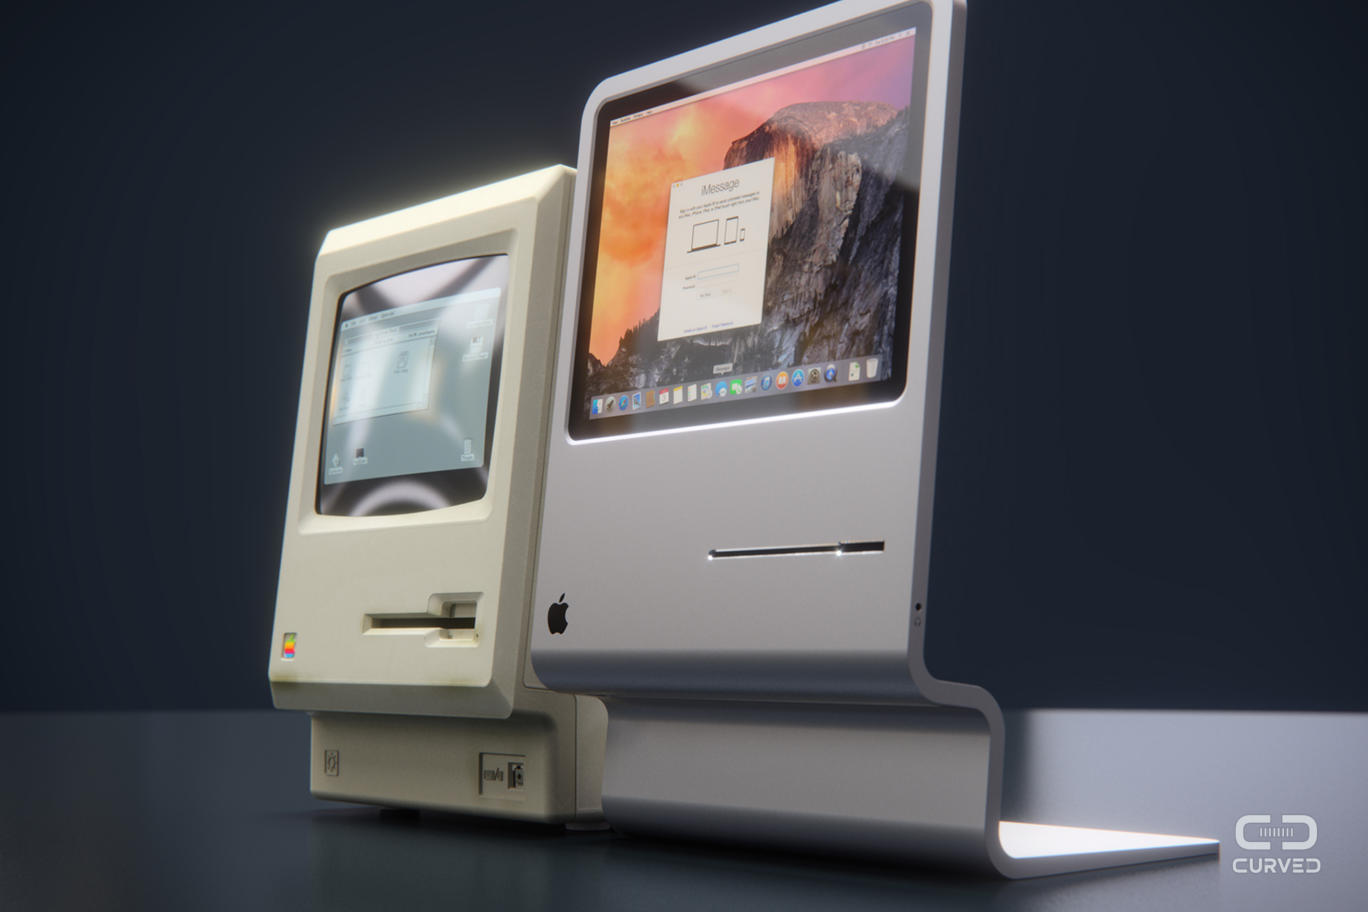 The original Macintosh from 1984, together with the cute modern design concept by CURVE/labs